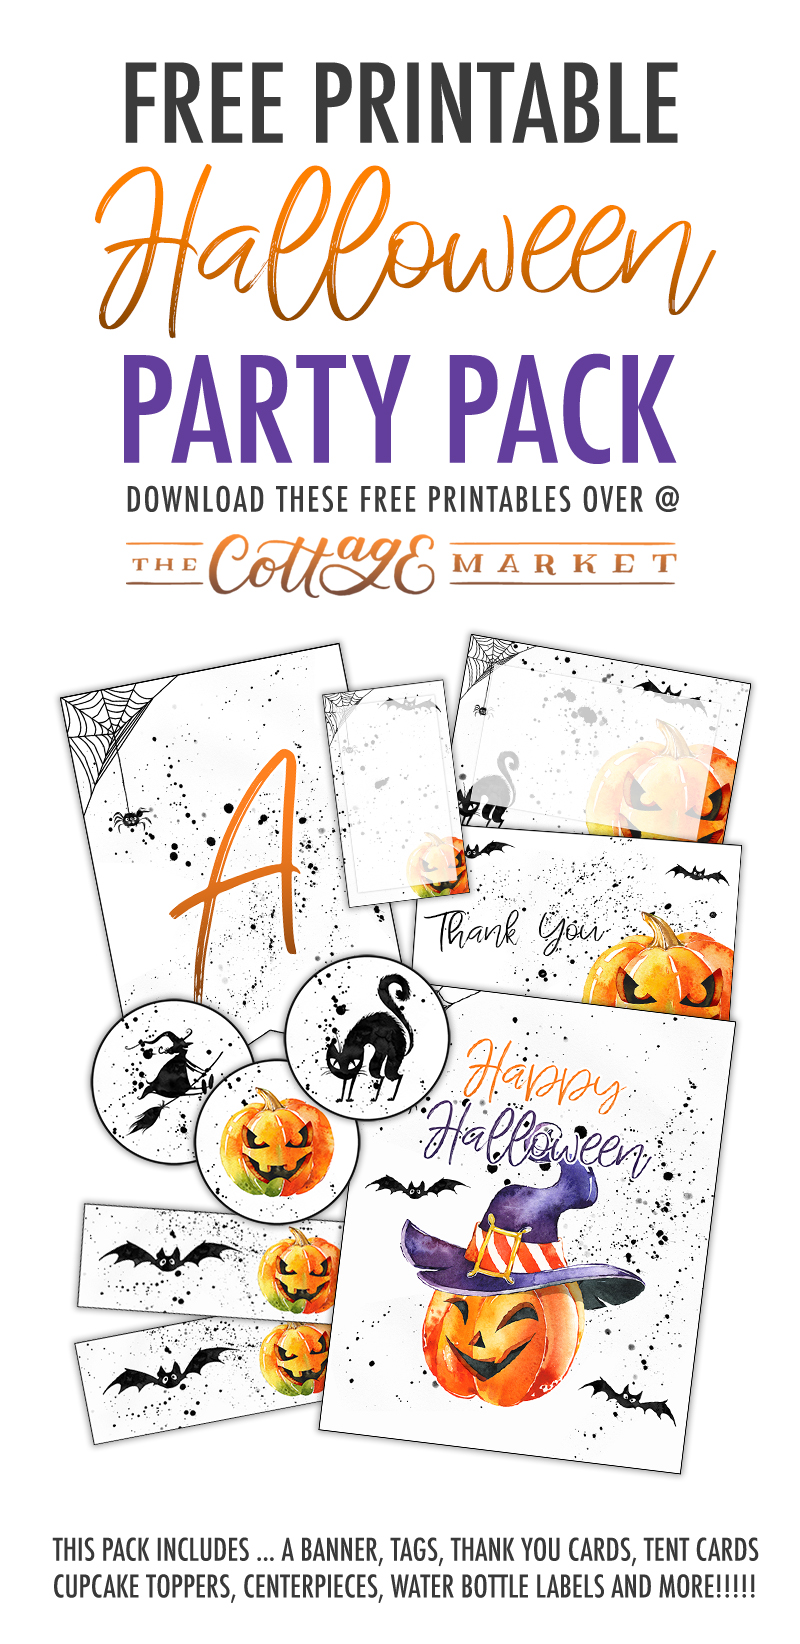 We have something awesome for you today! It's time for a Free Printable Halloween Party Pack! It has a full banner...cupcake toppers and invitation & More!